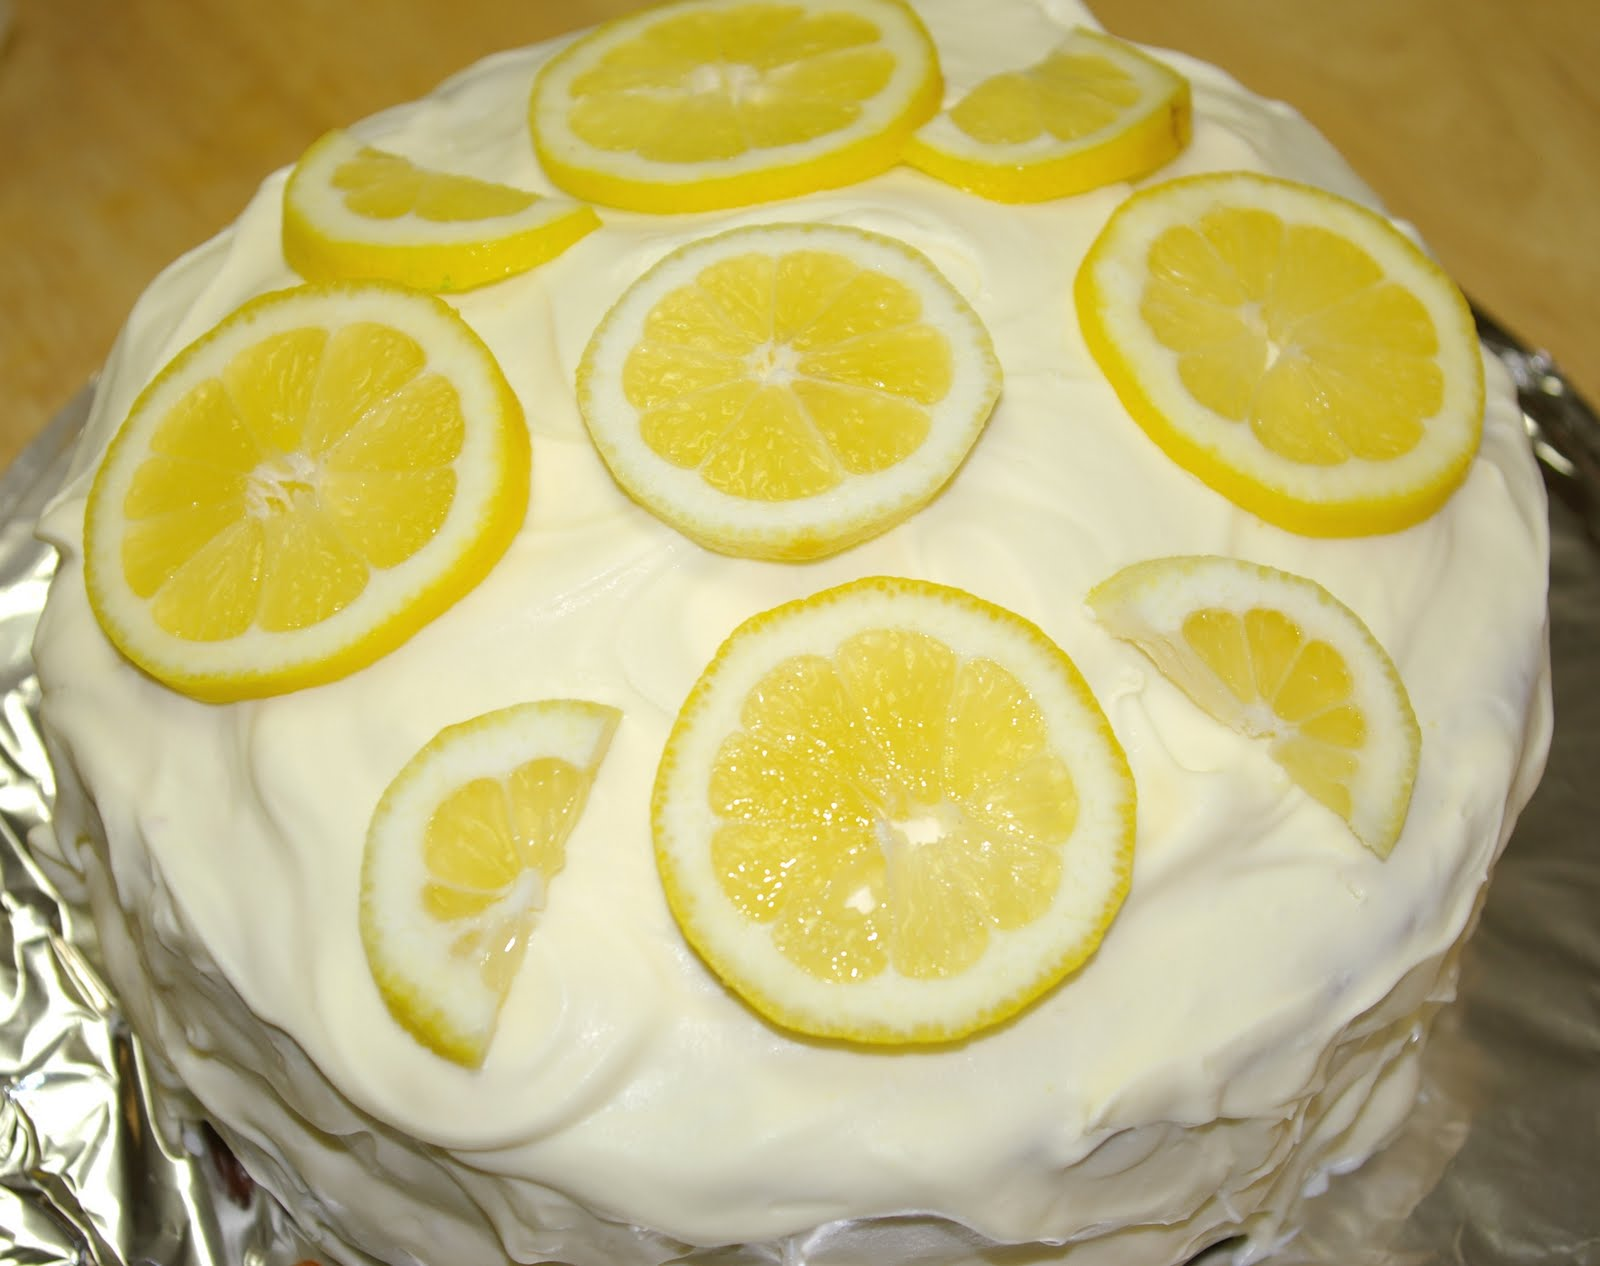 Wonder Turtle Soaps: Lemon Cake Recipe Wowza!